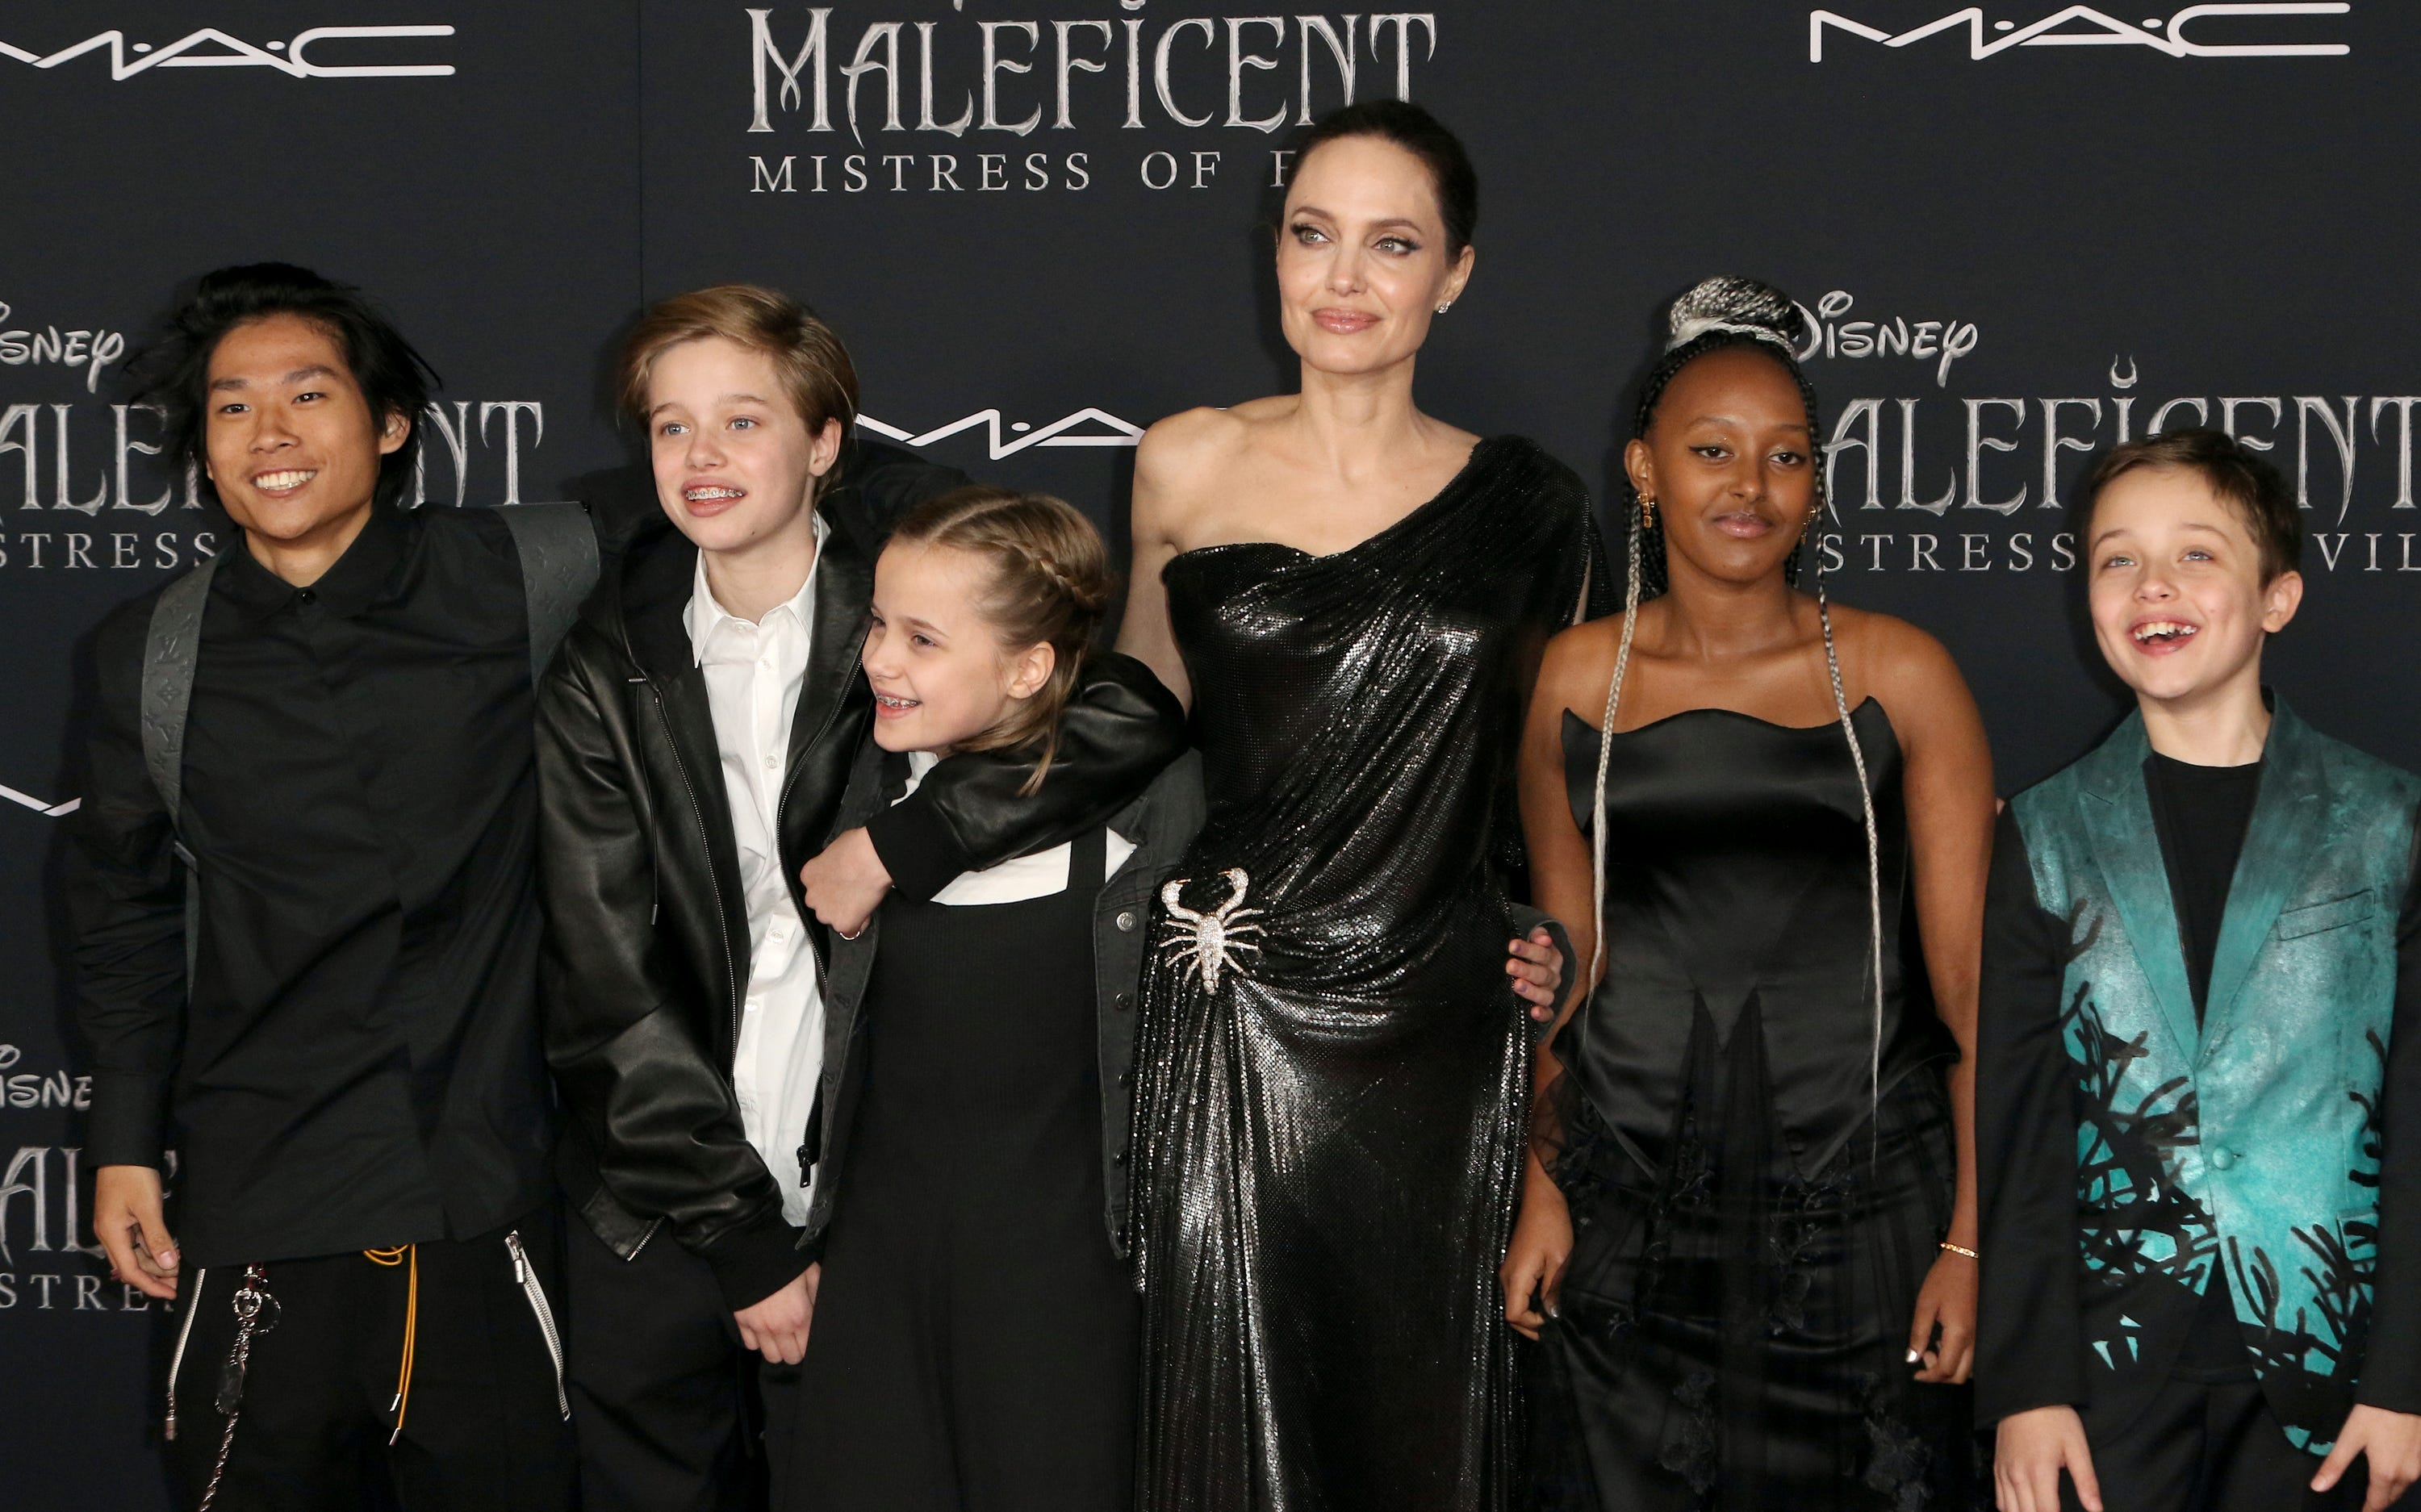 Angelina Jolie's kids steals the show at 'Maleficent: Mistress of Evil' premiere